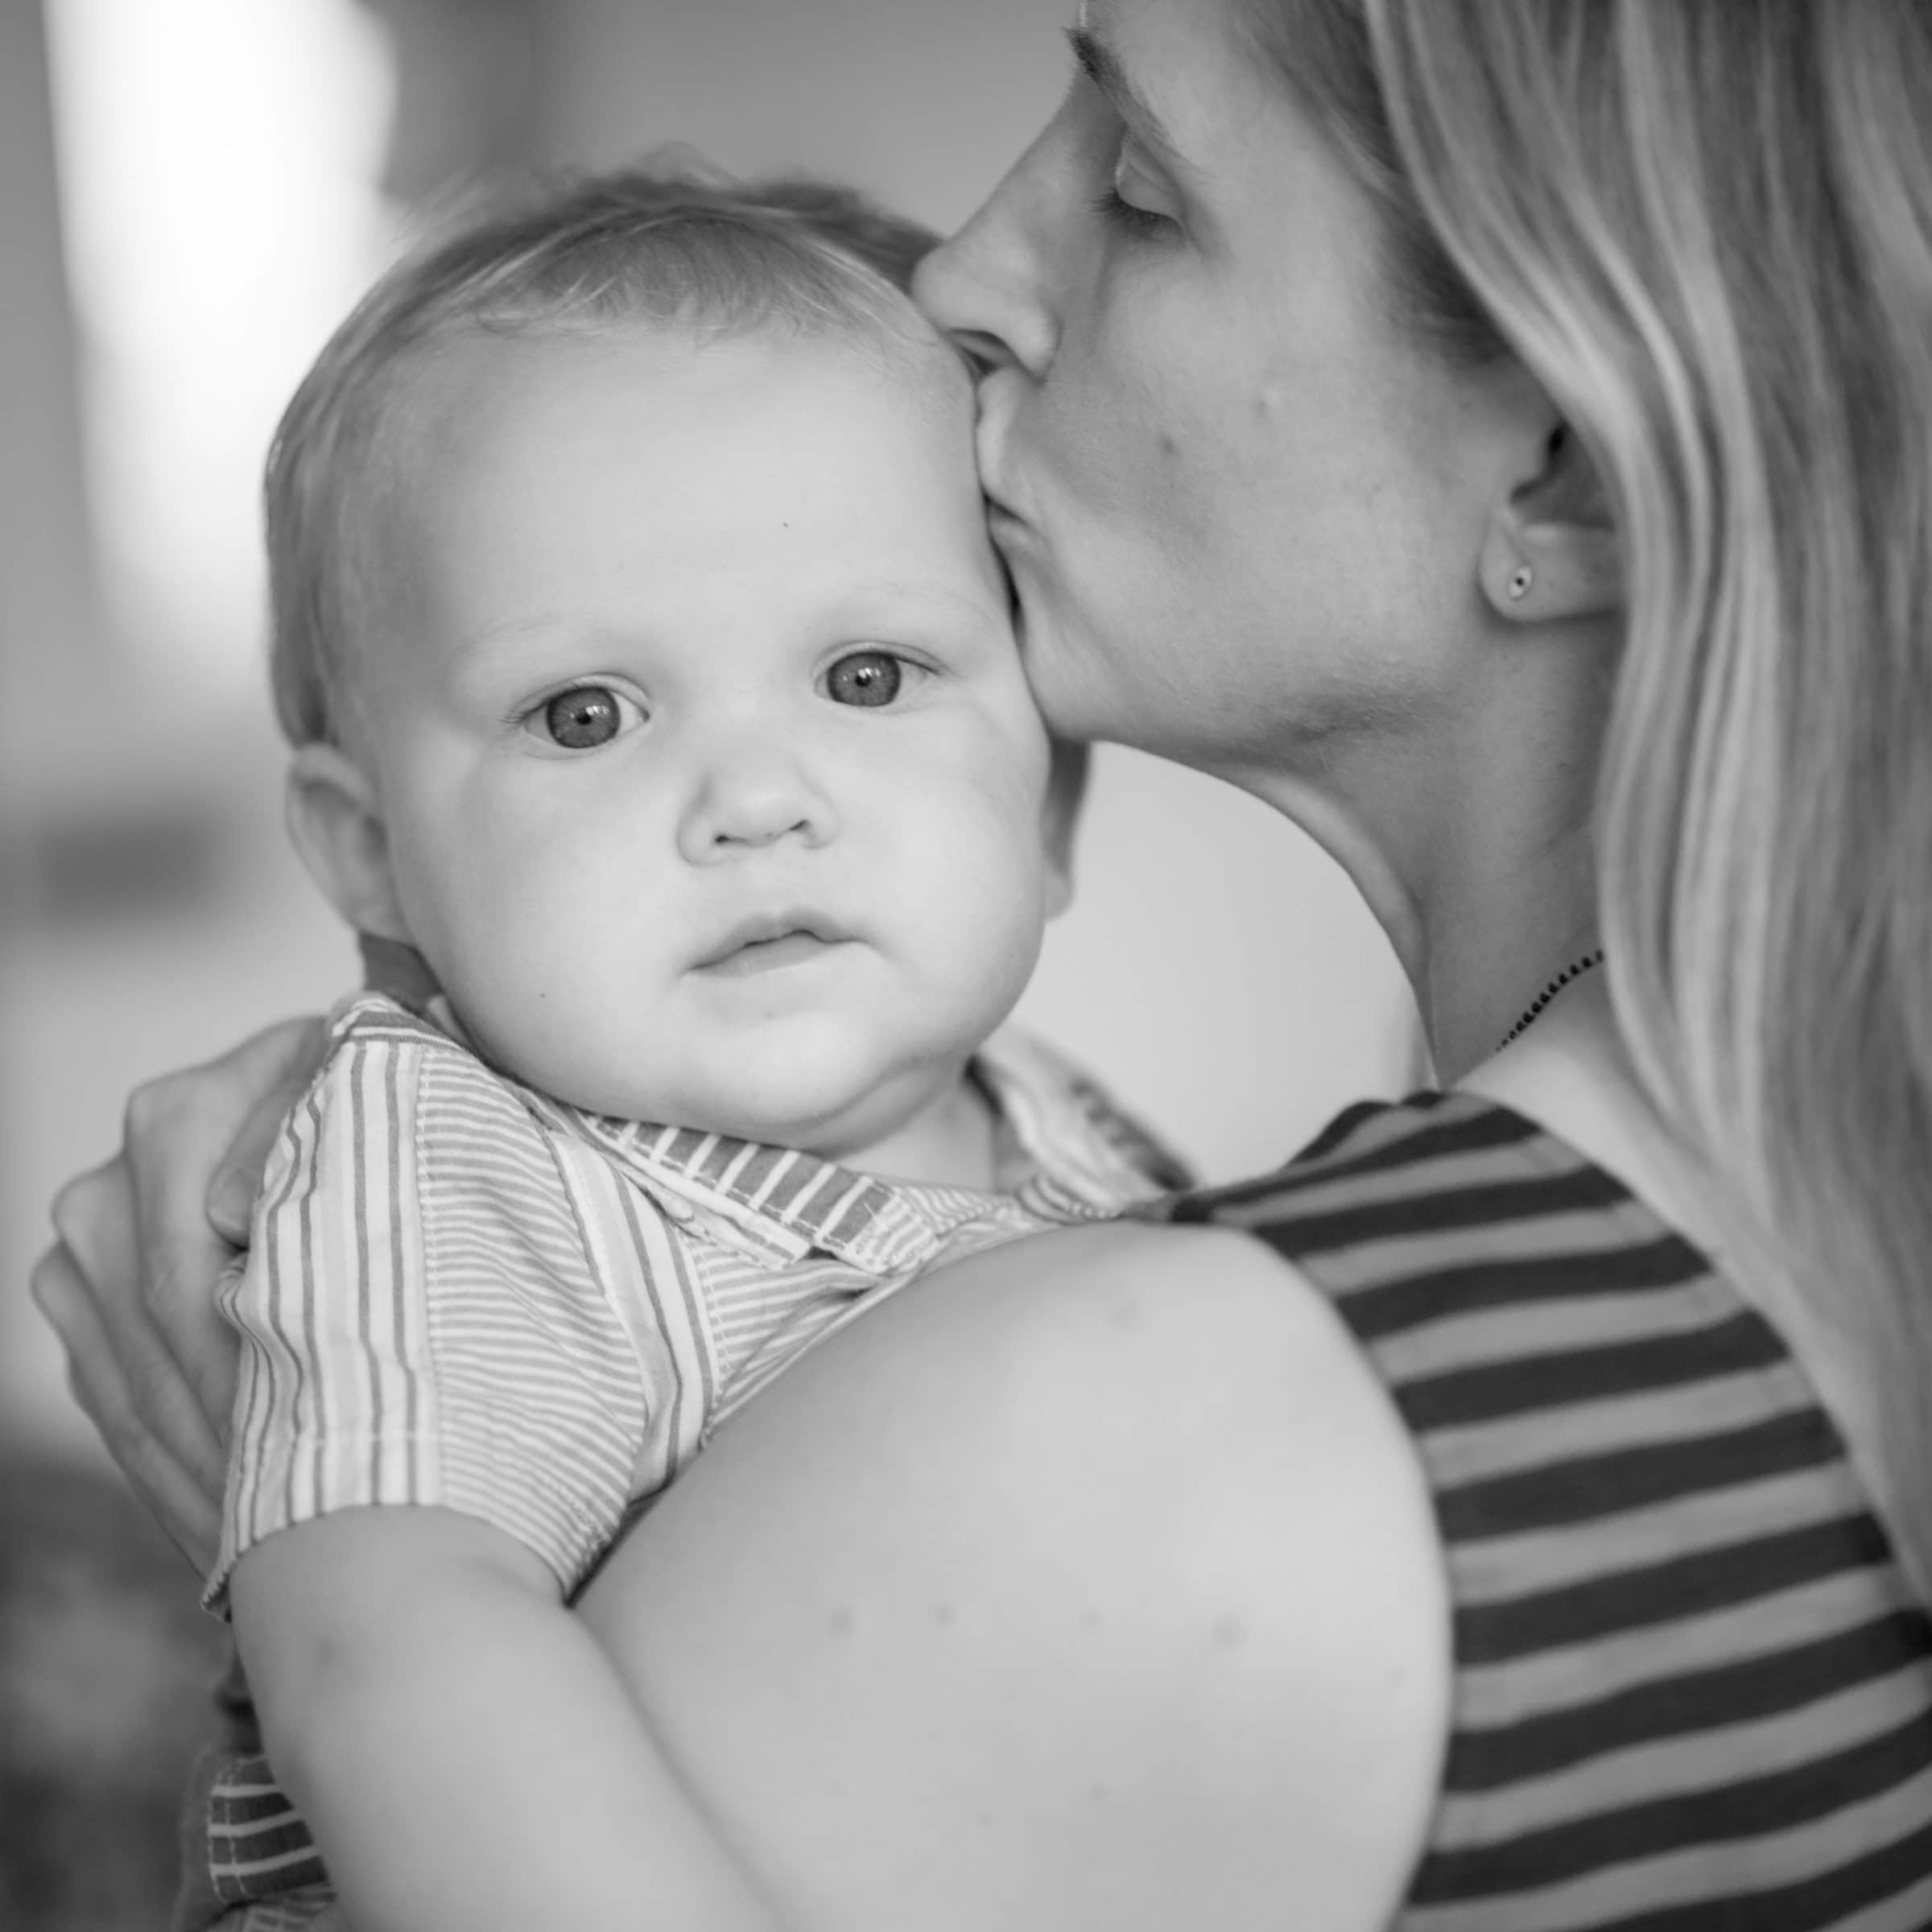 mom kissing infant on the forehead